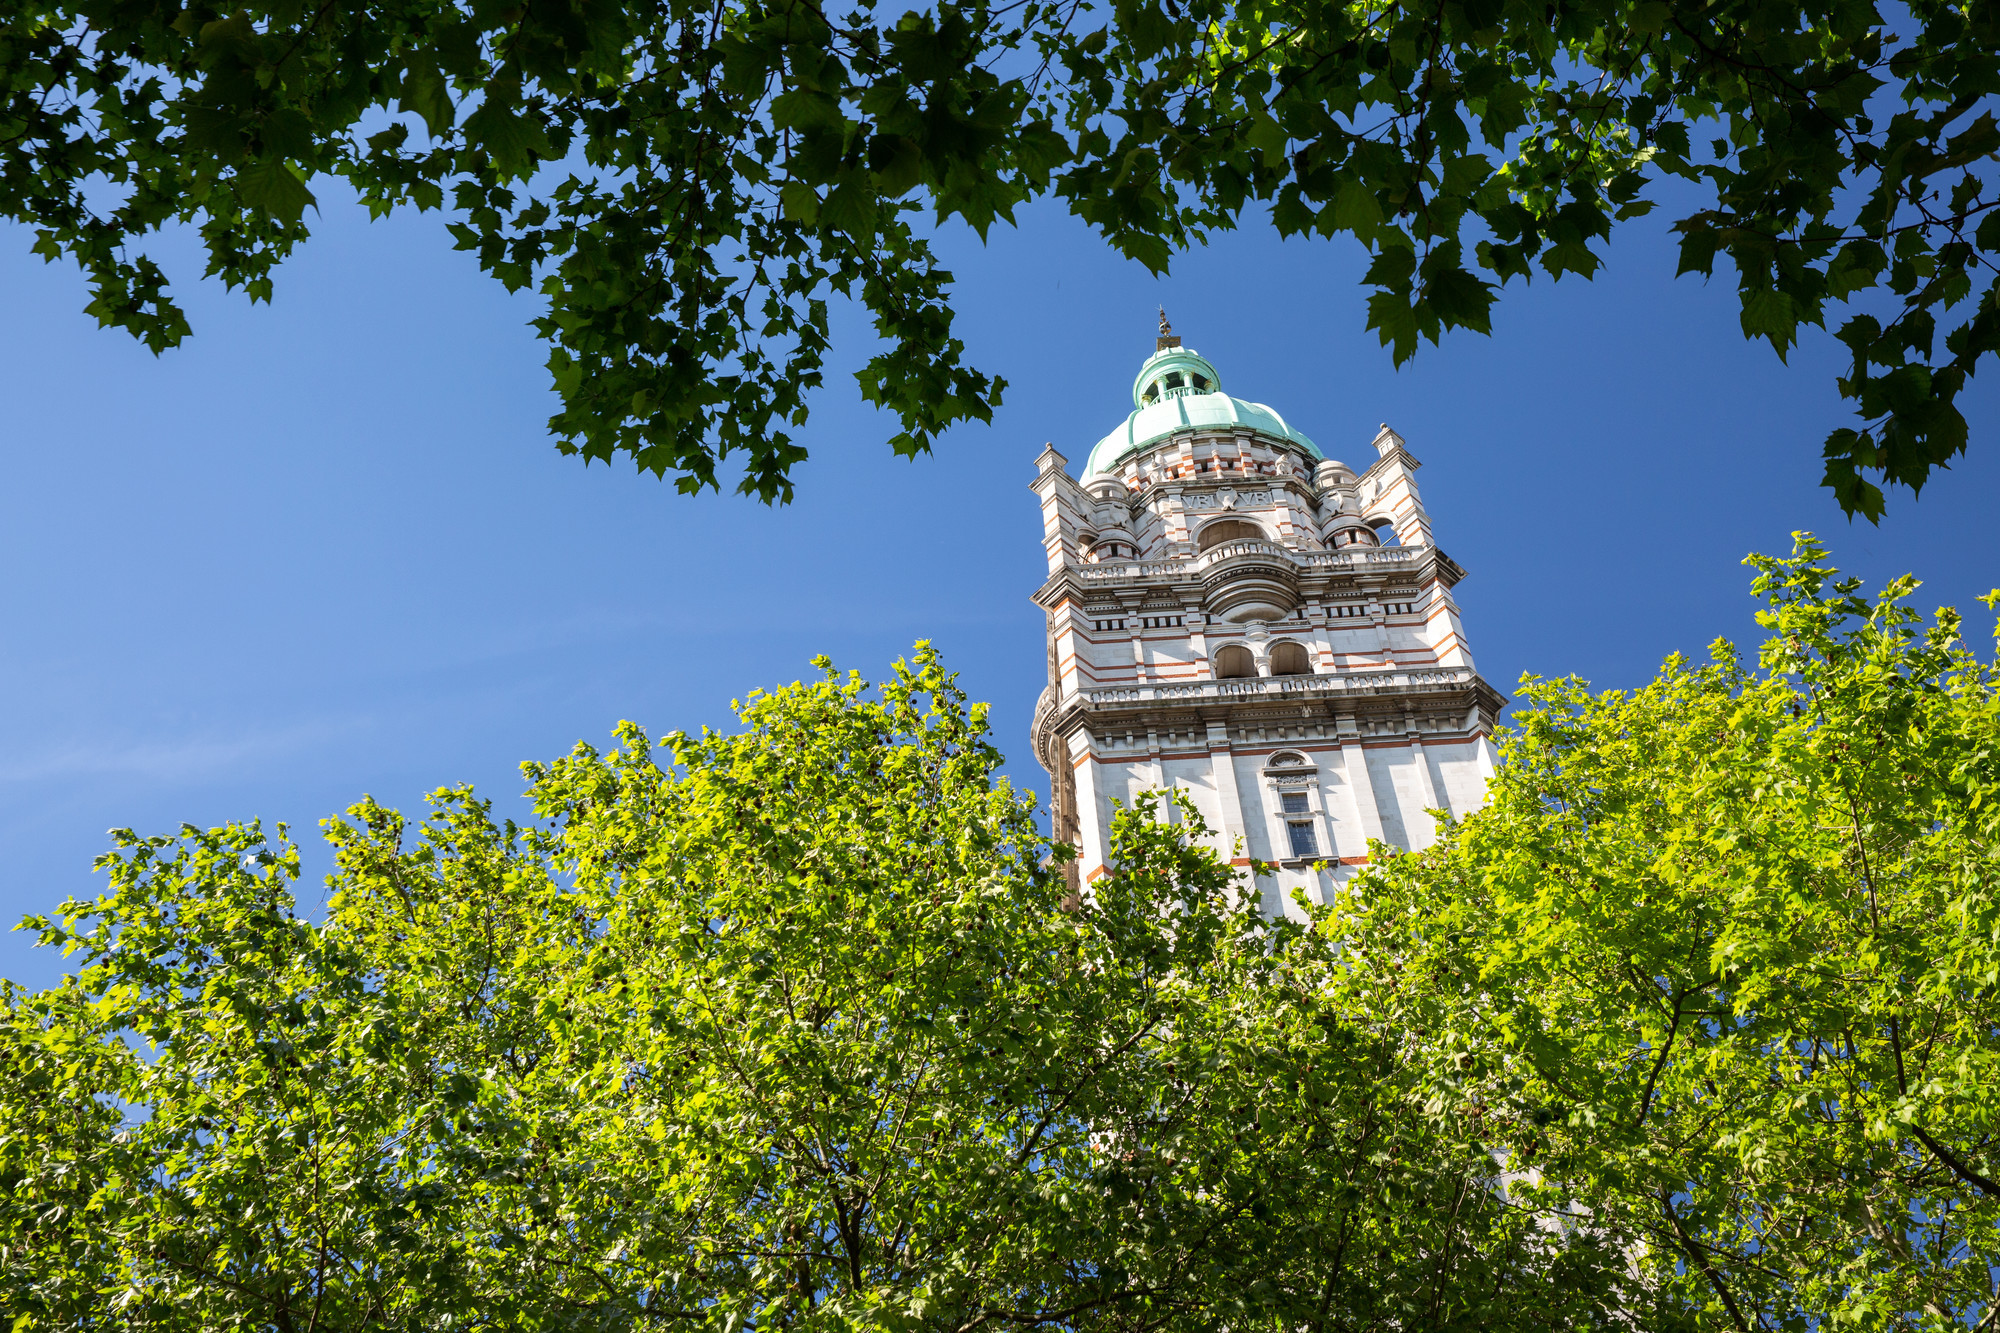 Queen's Tower at Imperial College